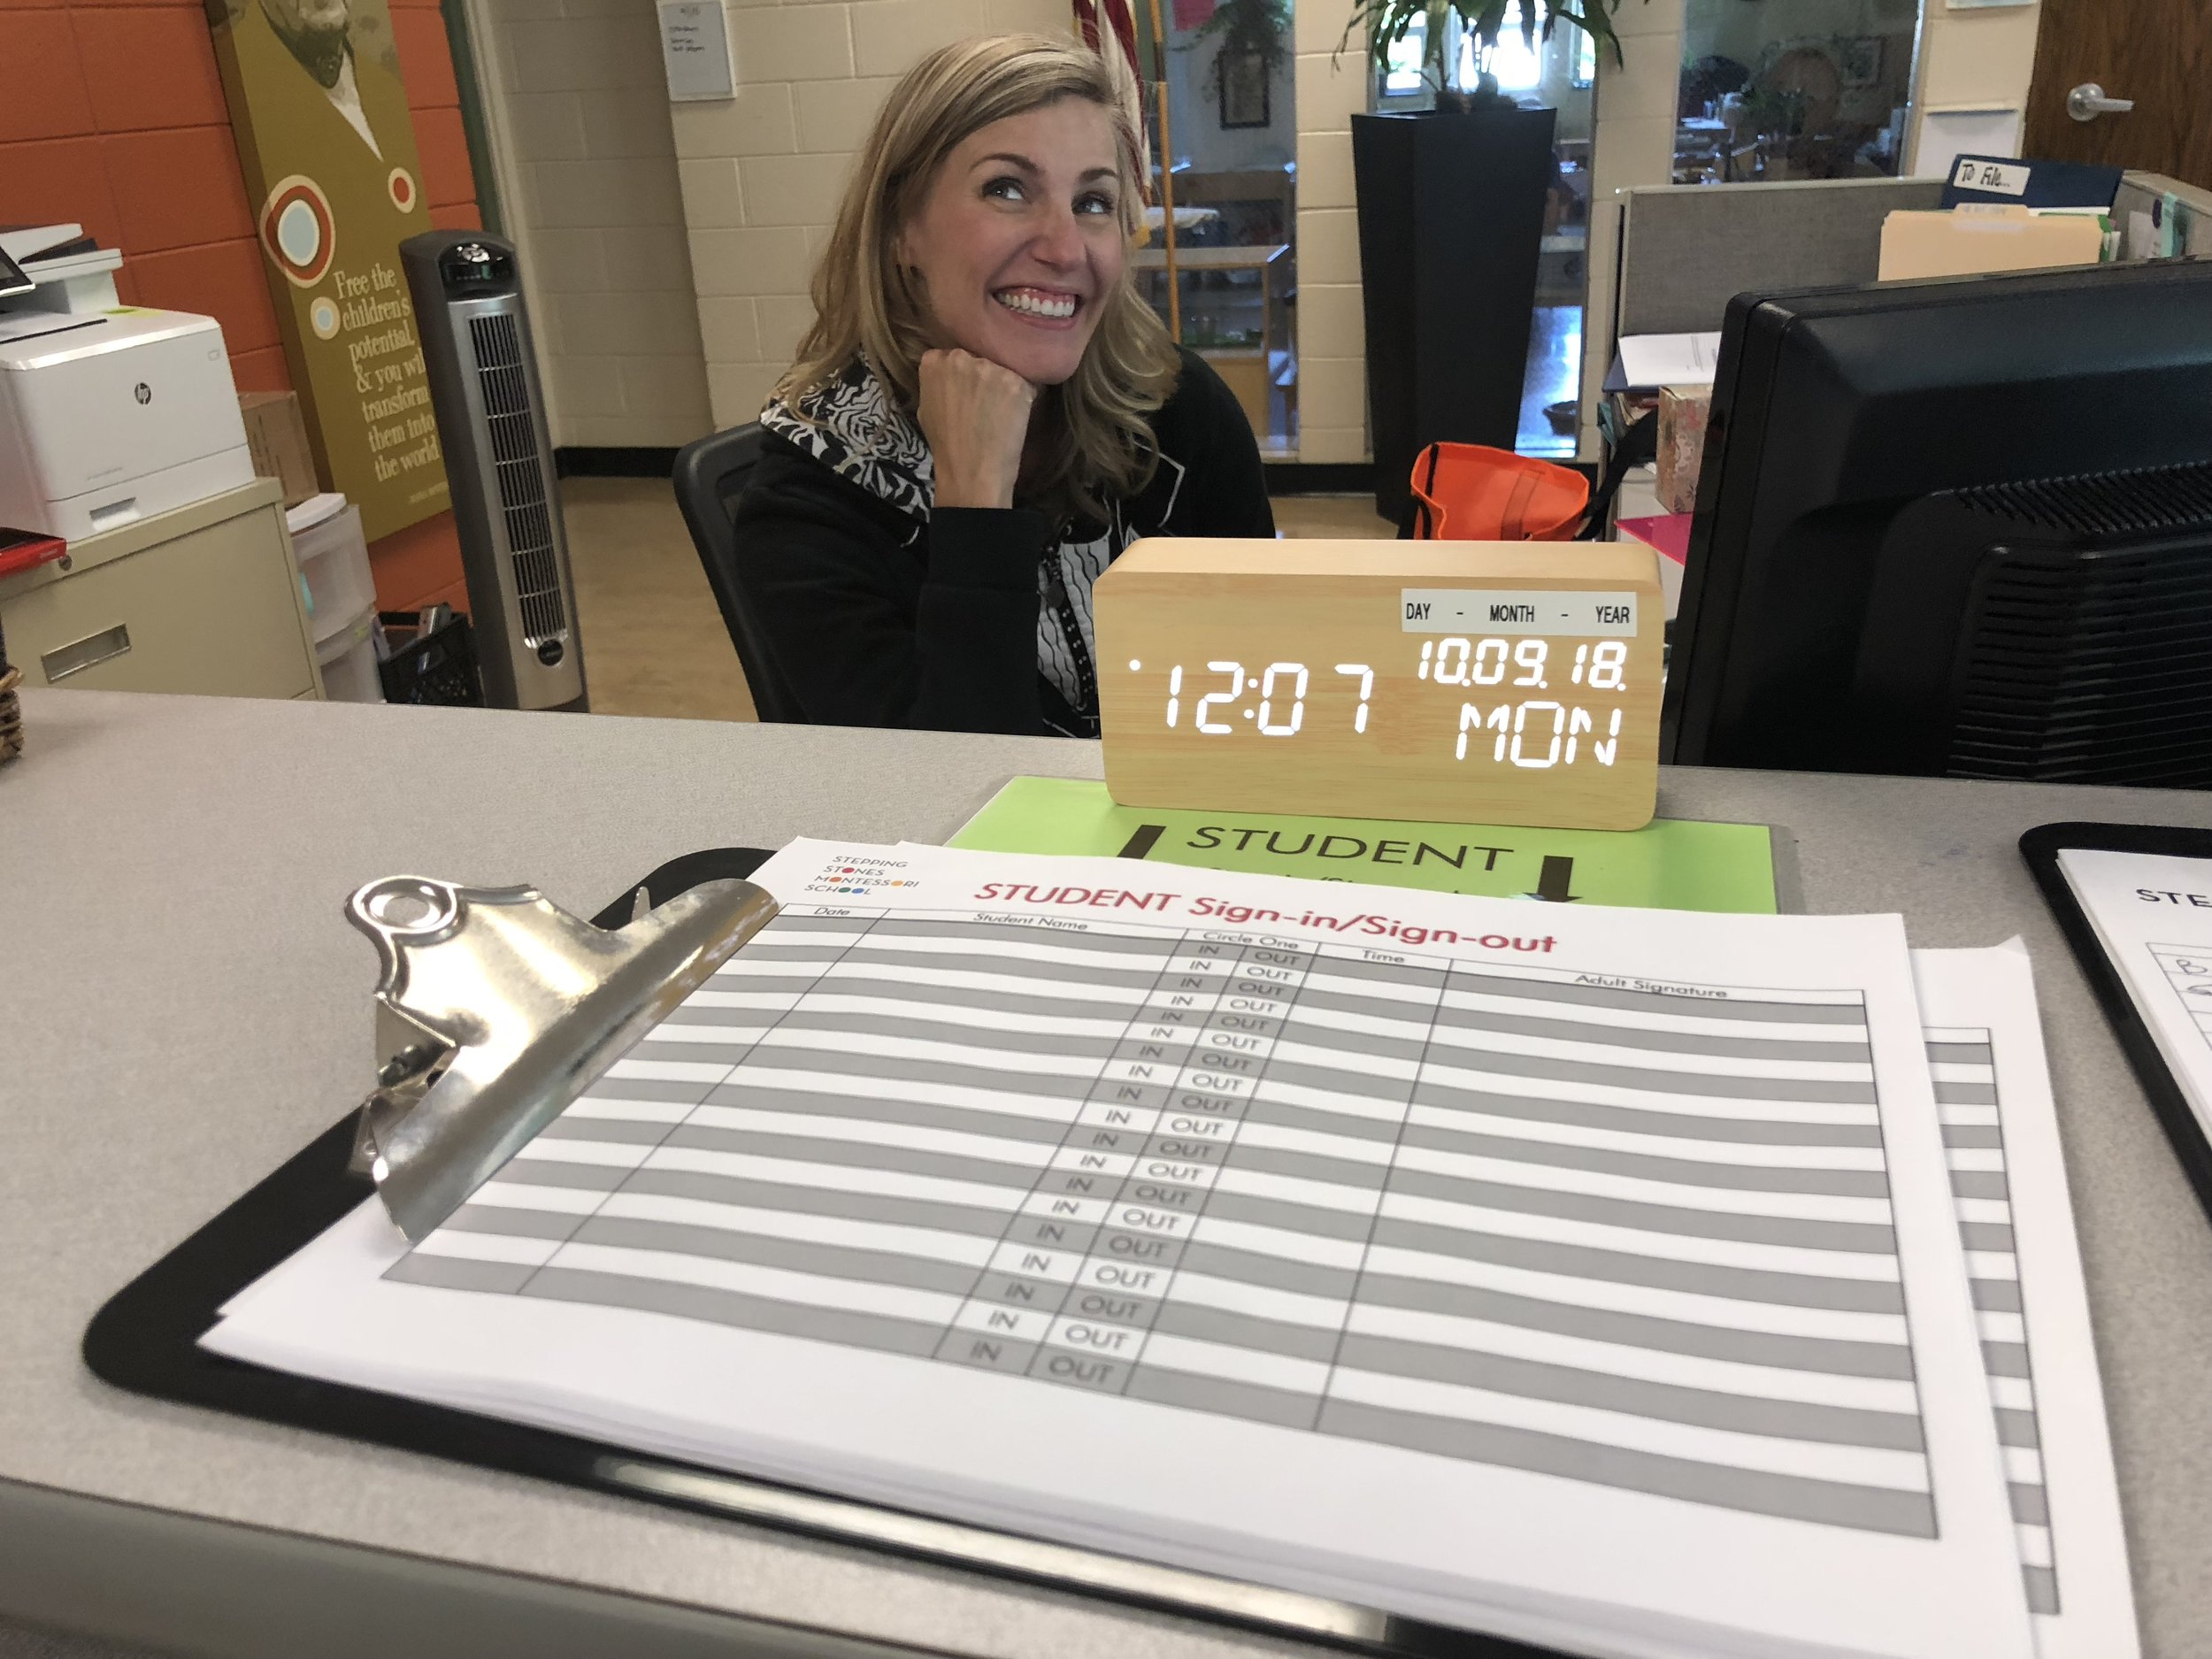 Sarah B. and her sign-in sheet